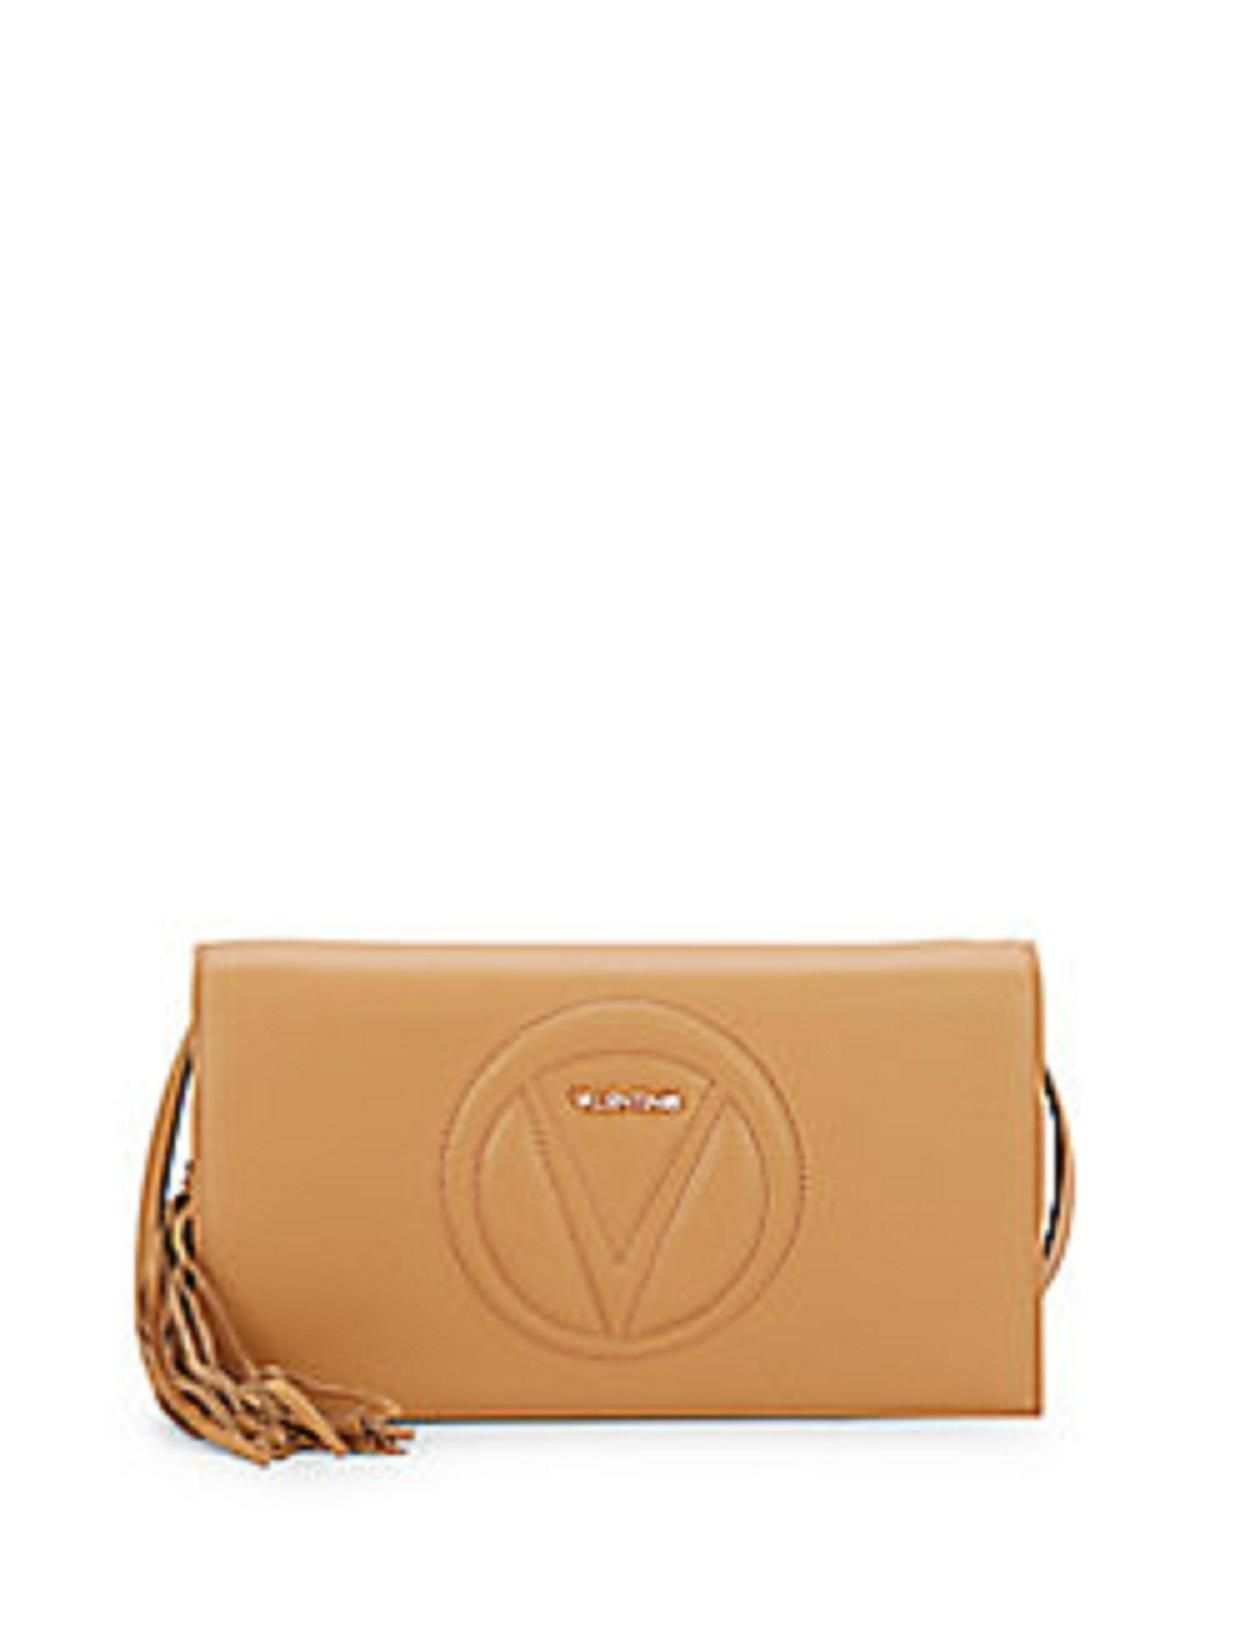 eac69a8b20 Get the trendiest Clutch of the season! The Valentino By Mario Lena Leather  Cross-body Caramello Clutch is a top 10 member favorite on Tradesy.